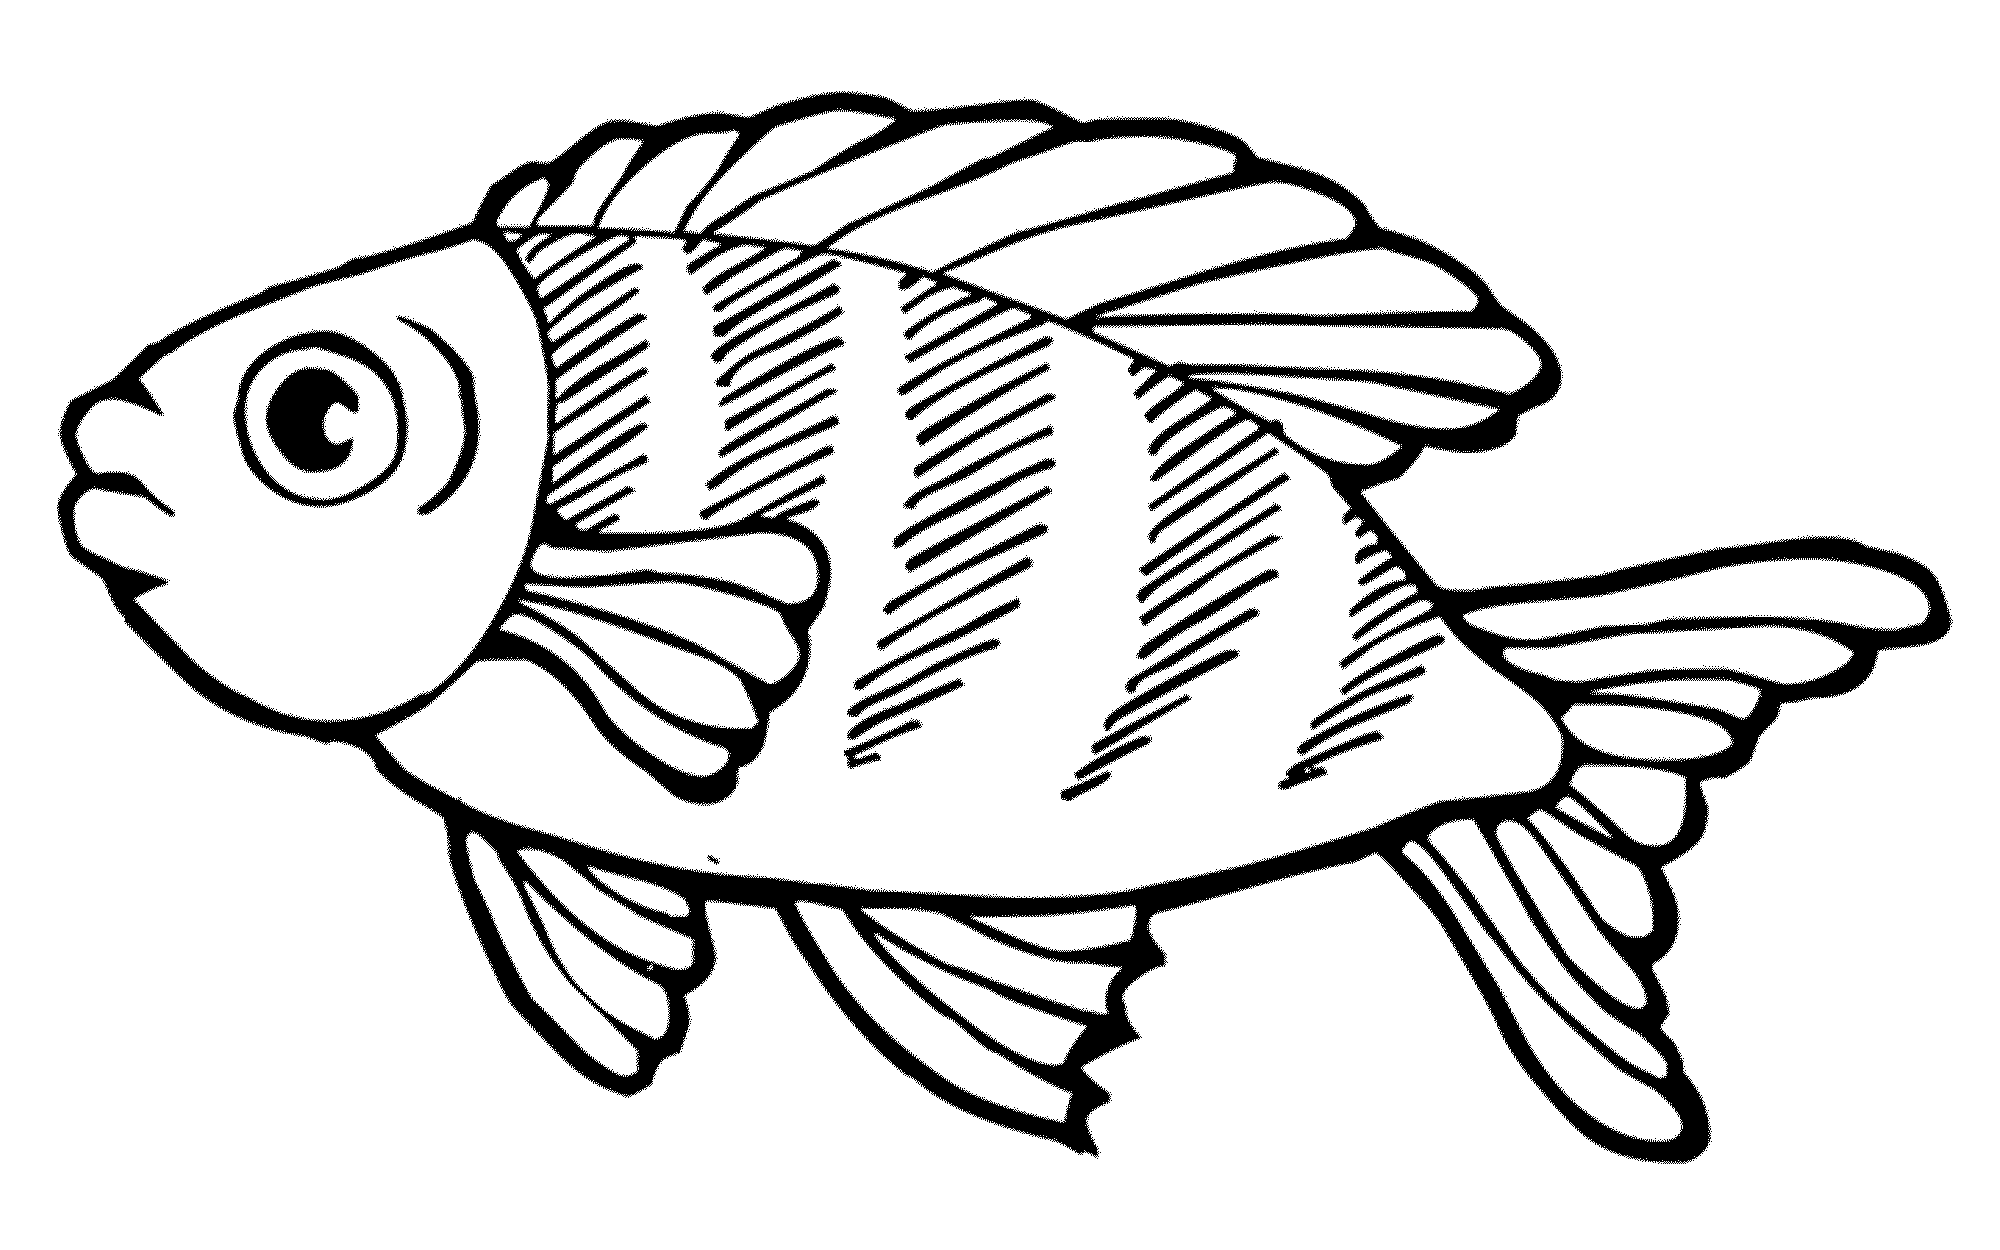 detailed fish coloring pages detailed ornamental sketch of a fish stock vector pages detailed fish coloring